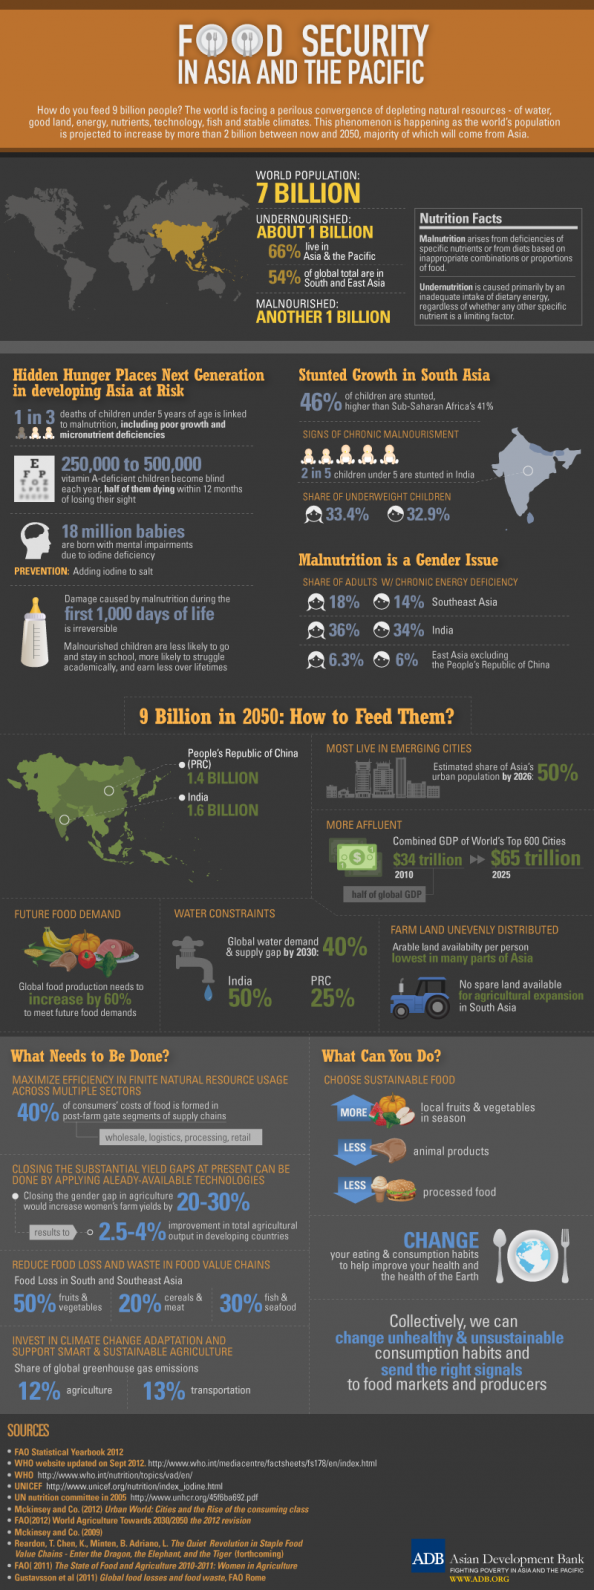 Food Security in Asia and the Pacific Infographic